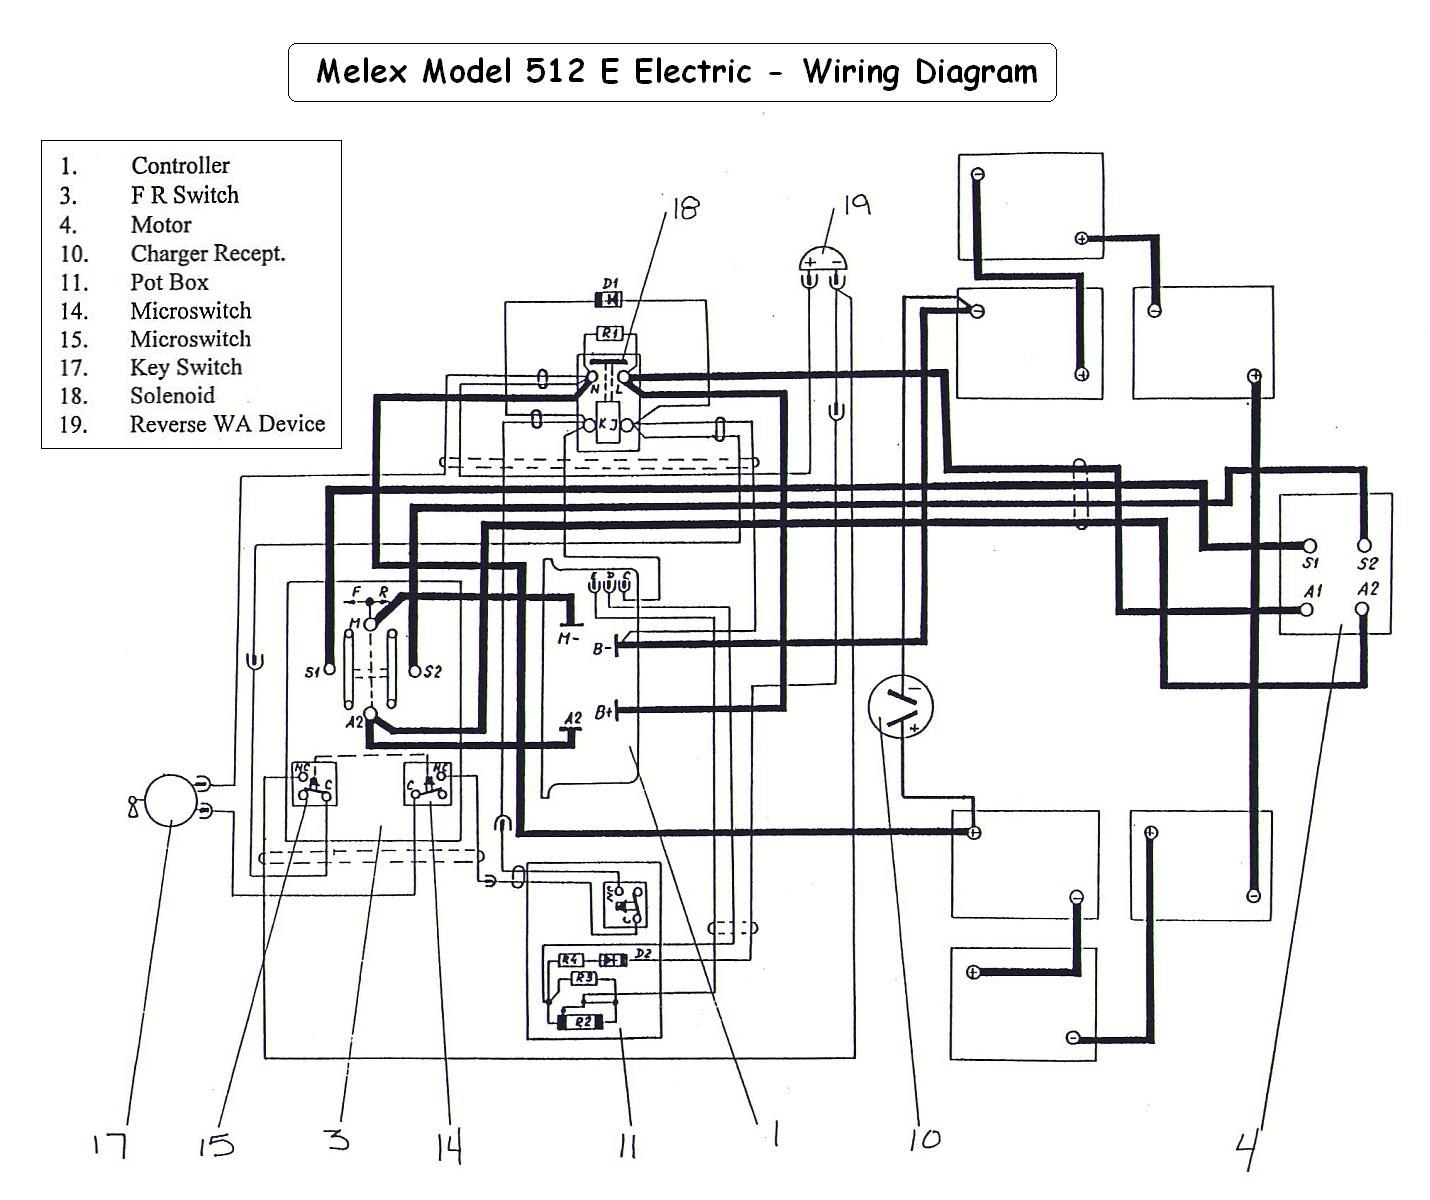 Melex512E_wiring_diagram vintagegolfcartparts com taylor dunn wiring diagram at gsmportal.co